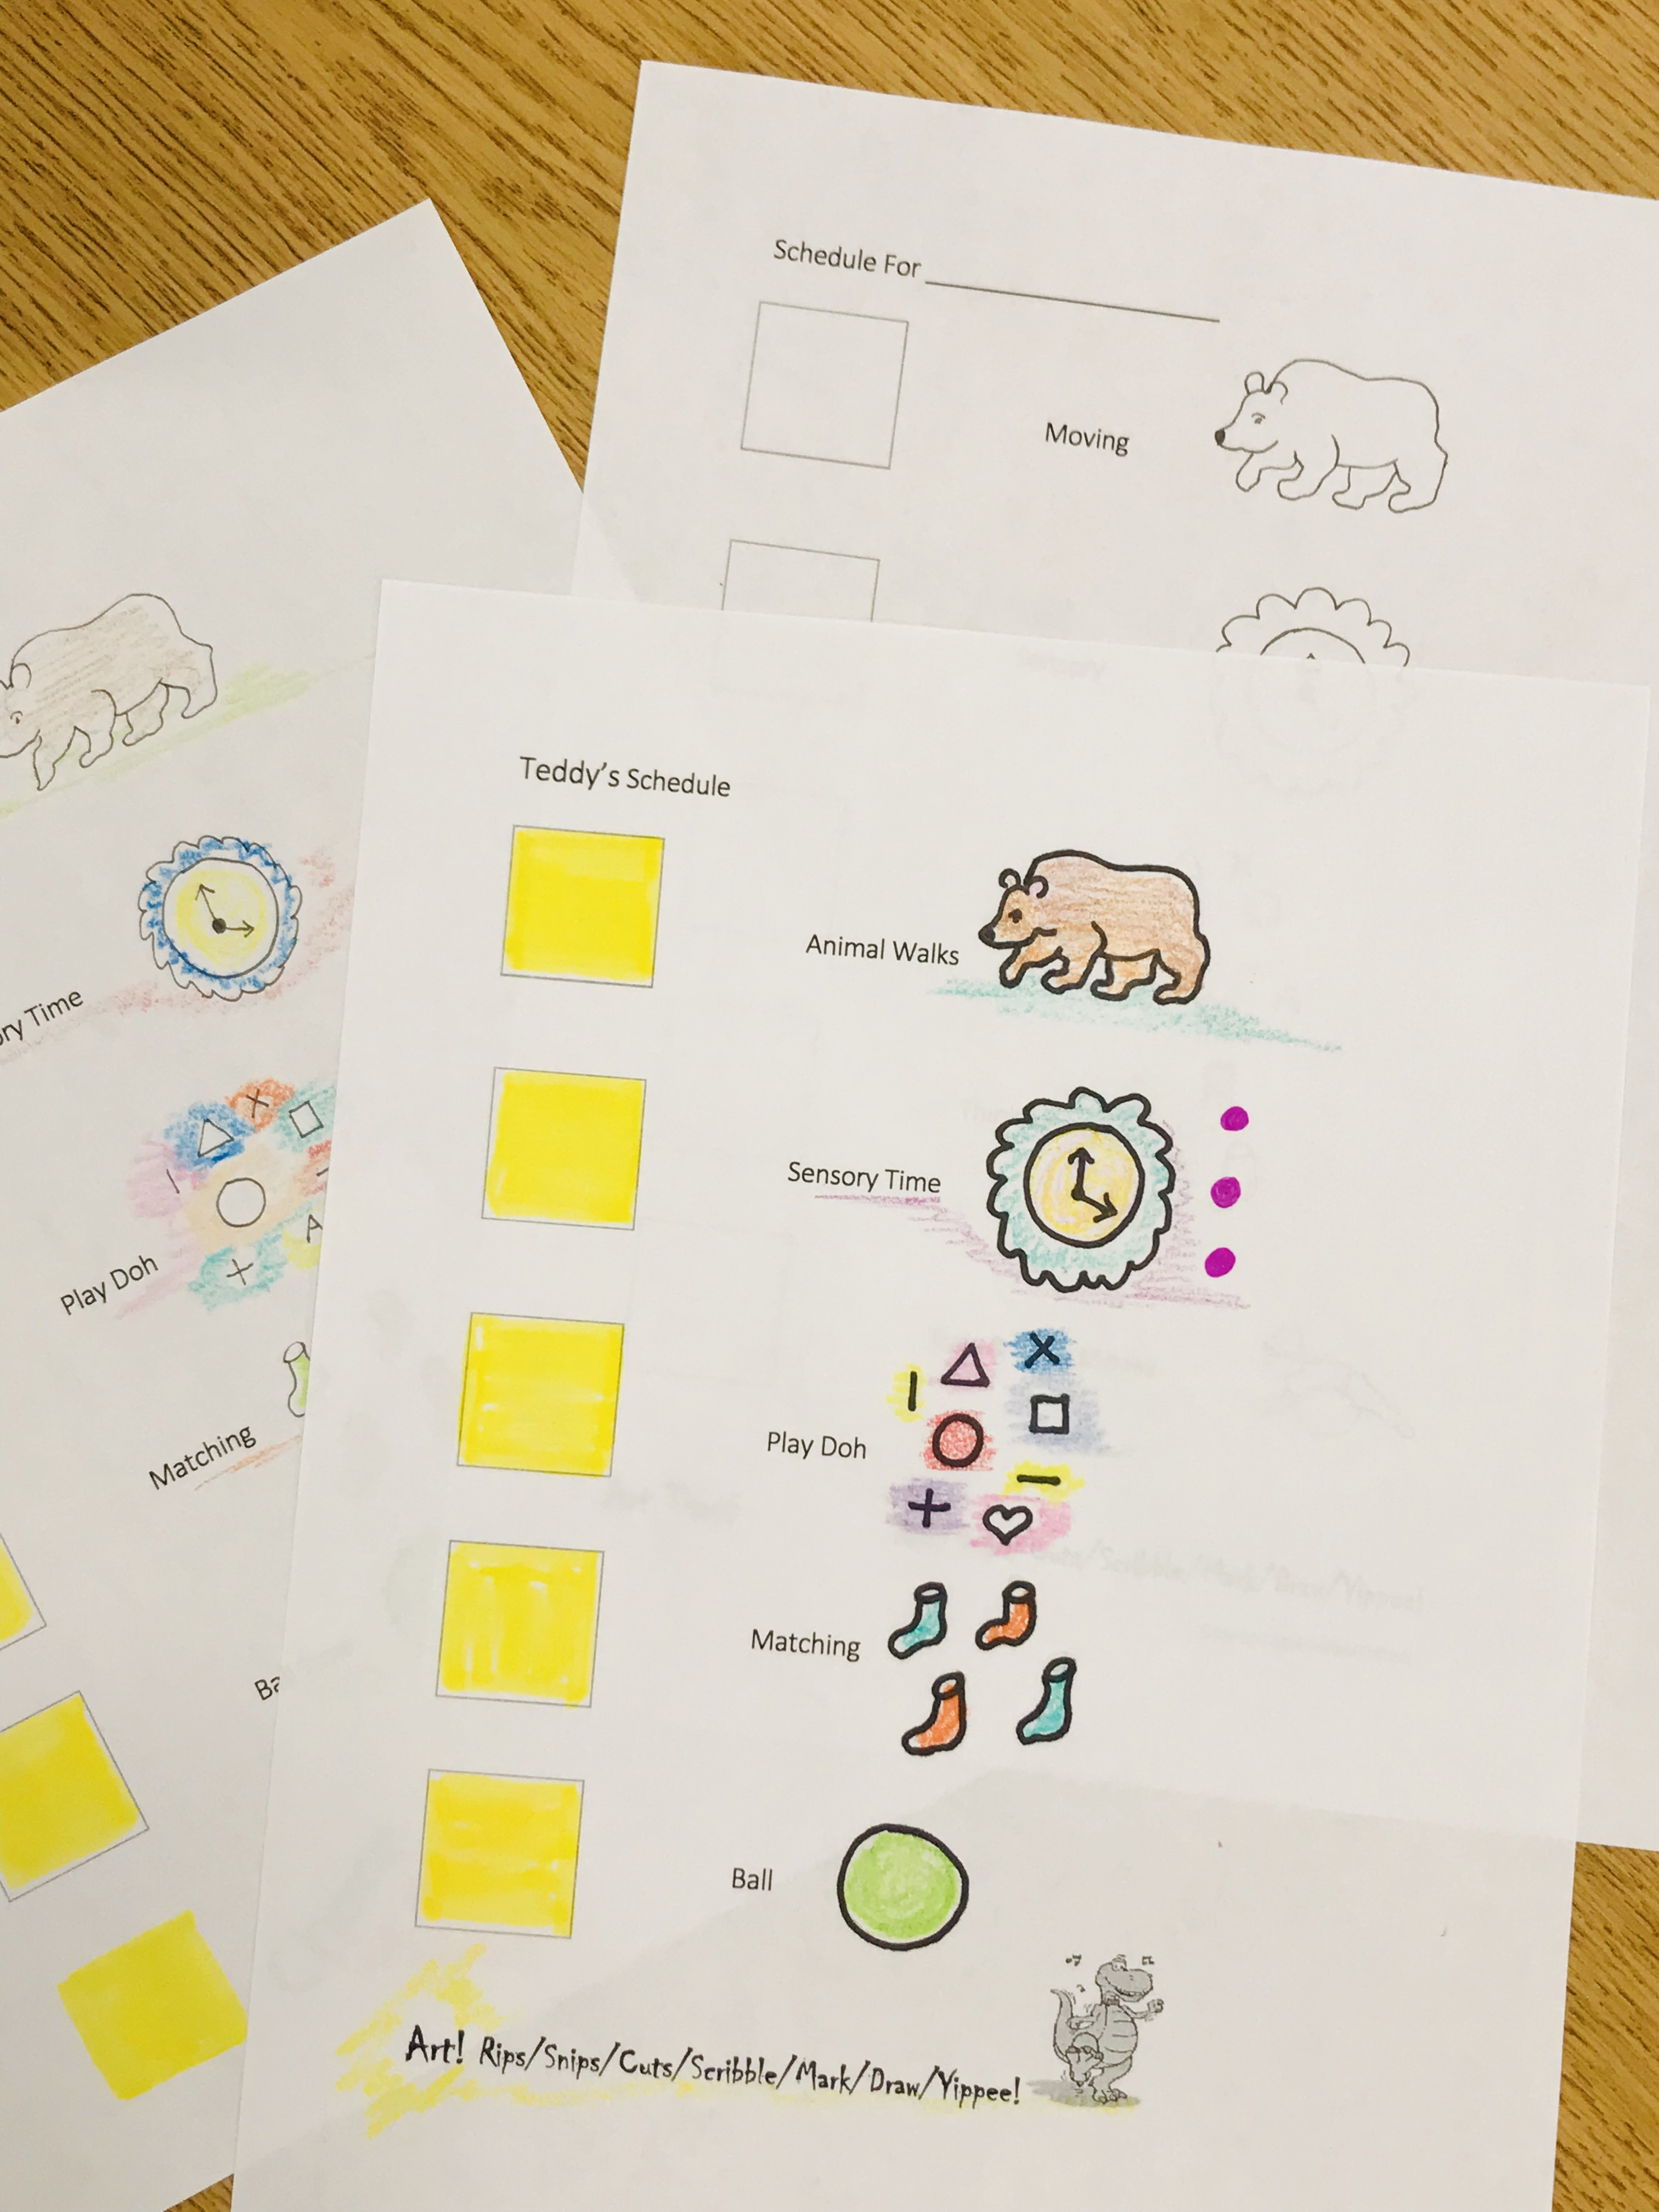 Print out with assorted drawings of animals and items